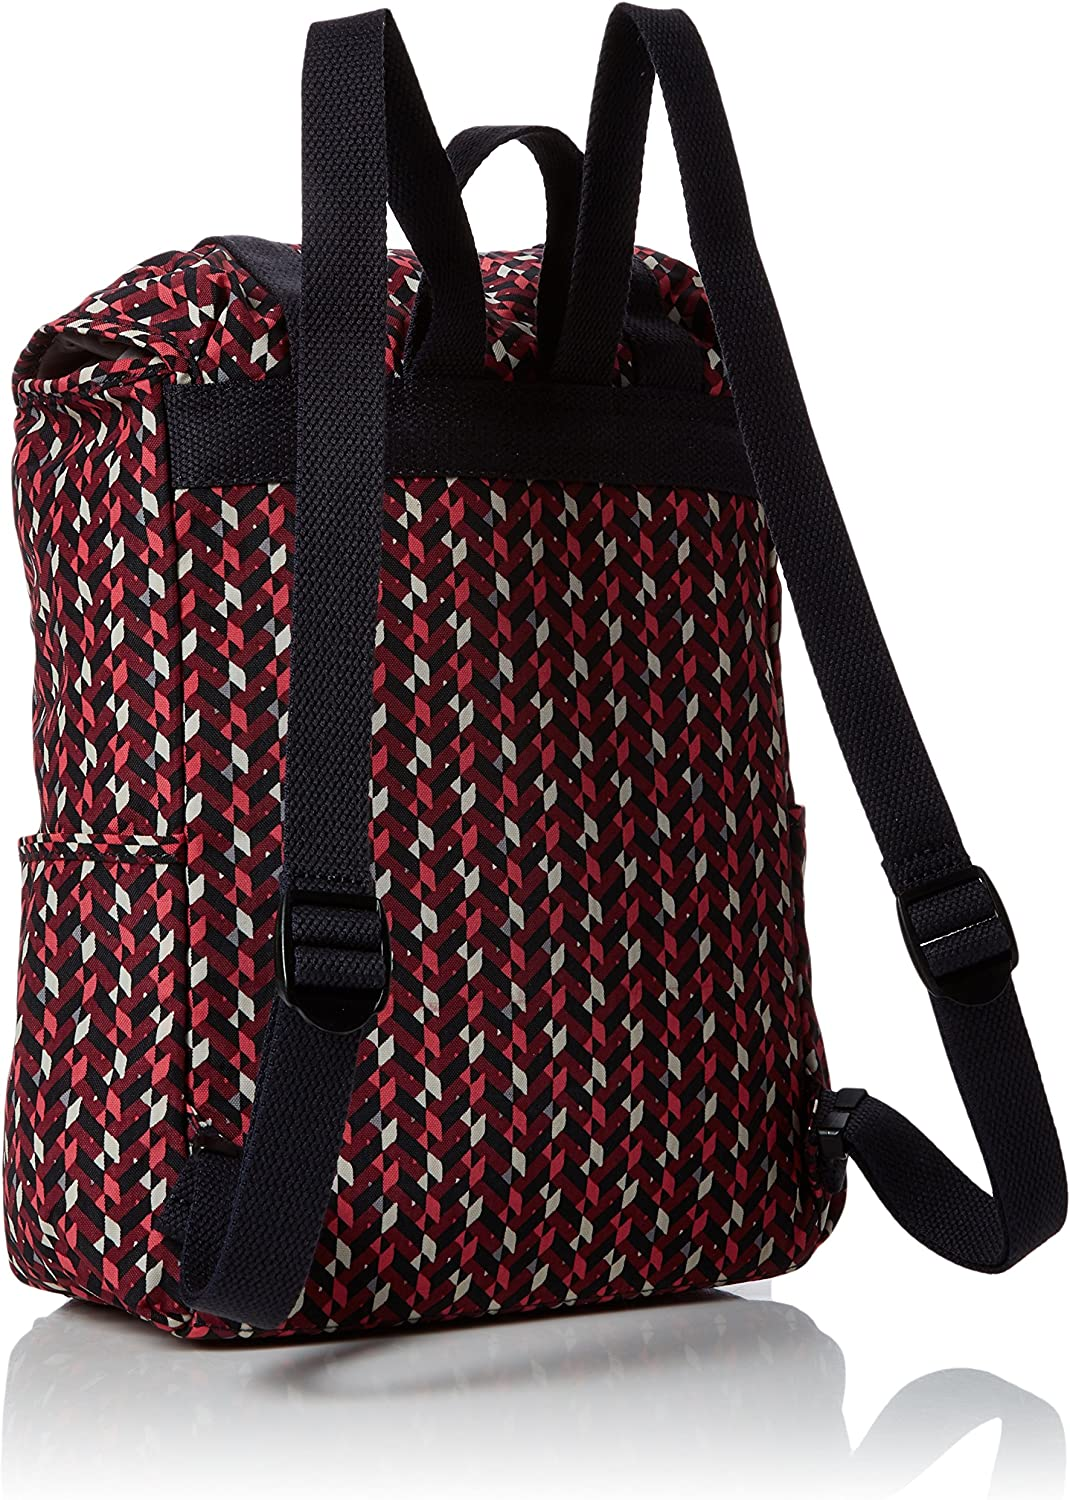 Kipling Experience S Small Backpack Pink Chevron